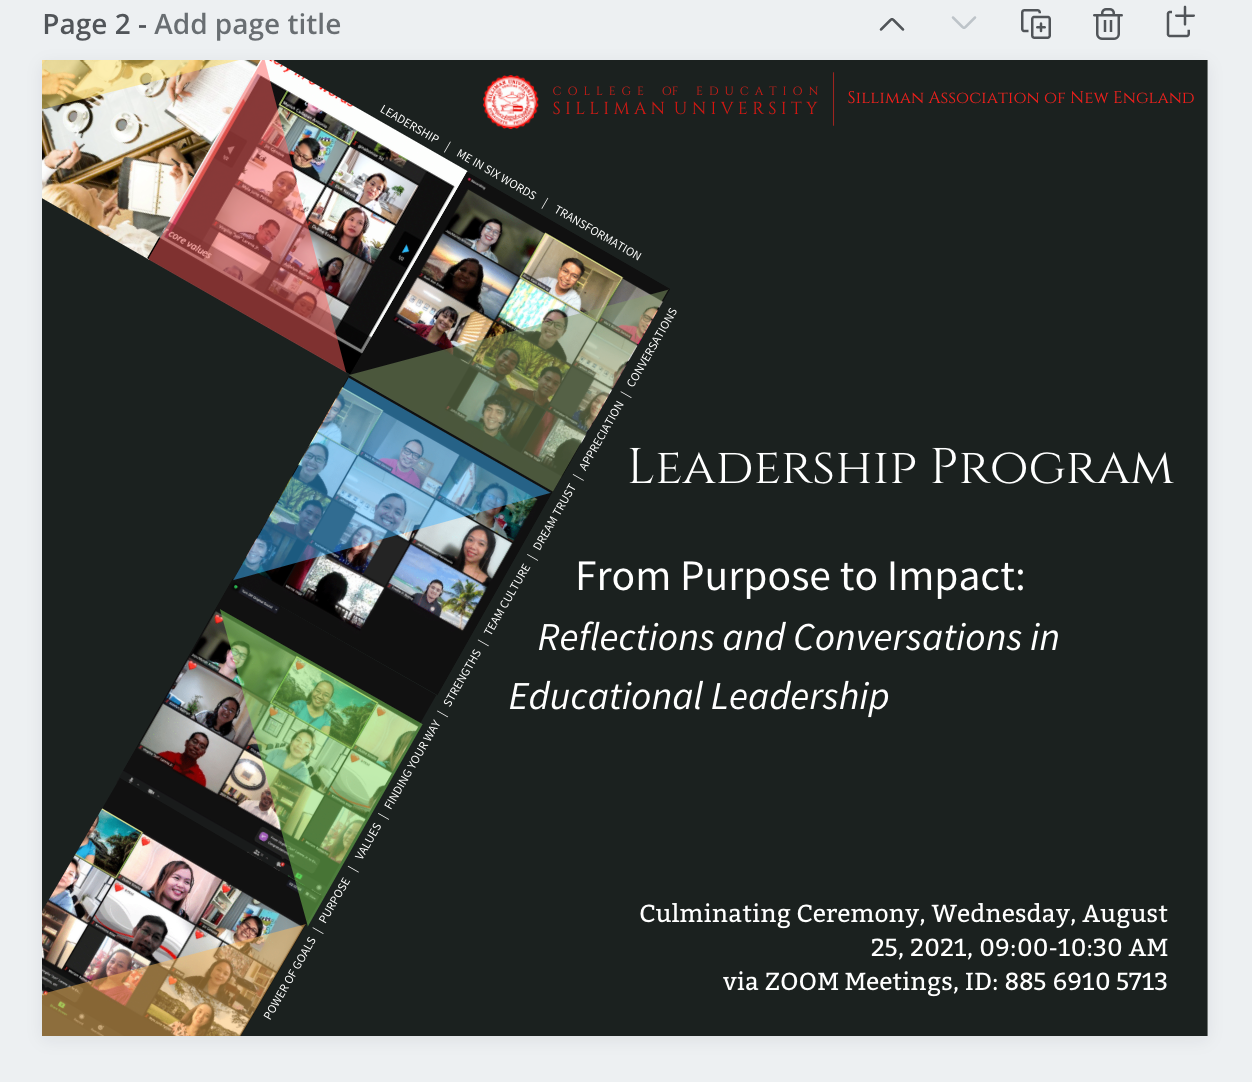 From Purpose to Impact: Reflections and Conversations in Educational Leadership